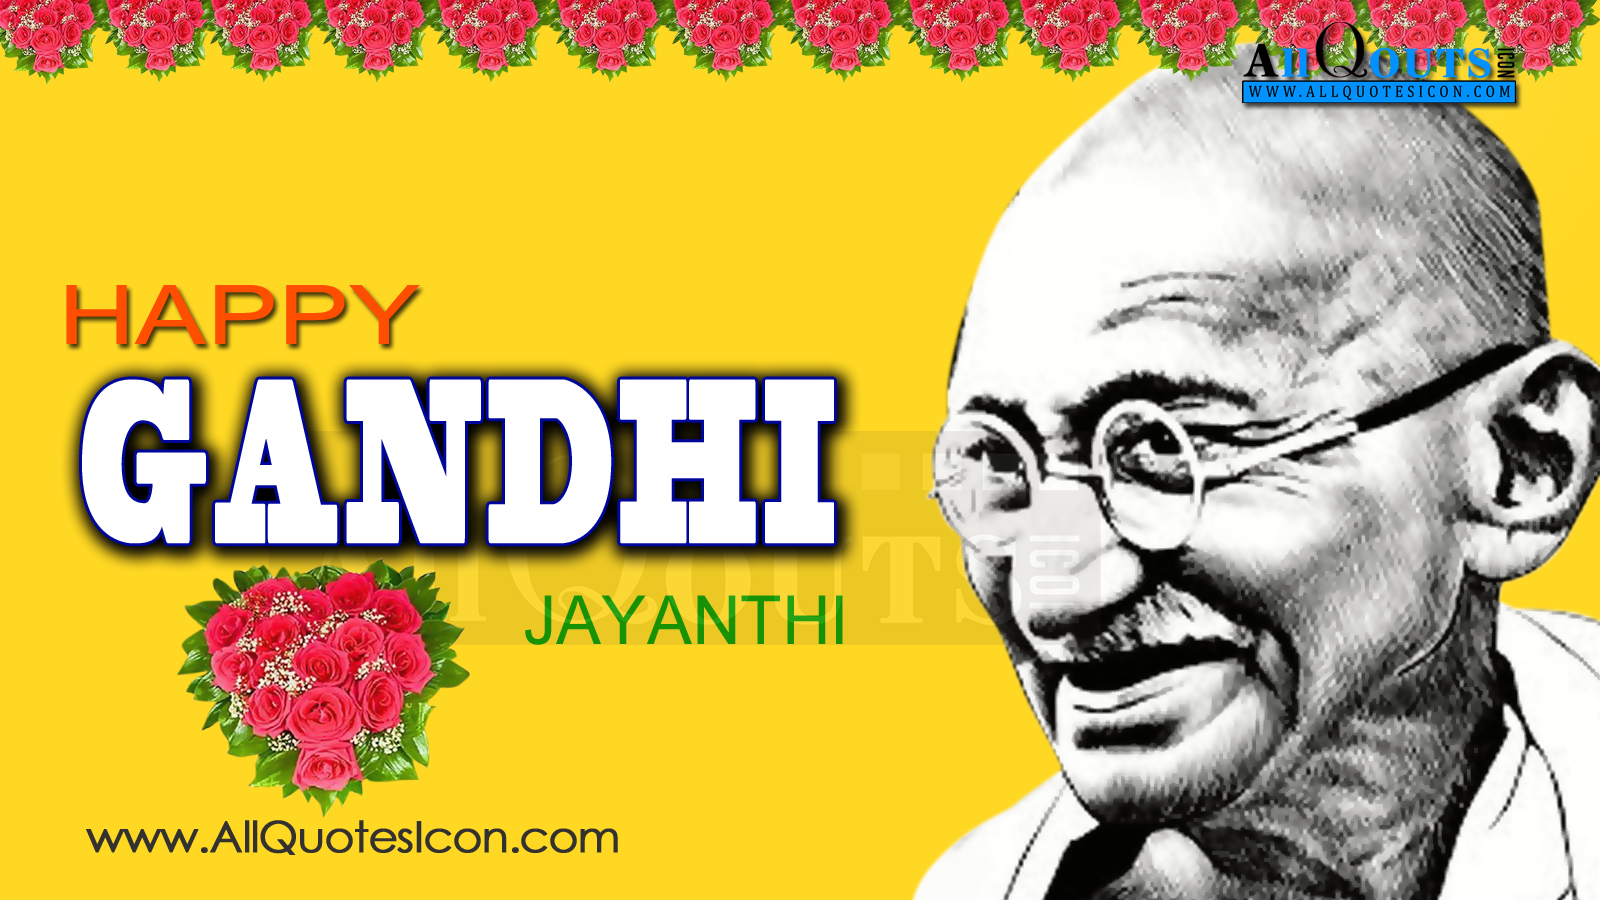 Happy Gandhi Jayanthi Greetings And Hd Pictures Best English Quotes